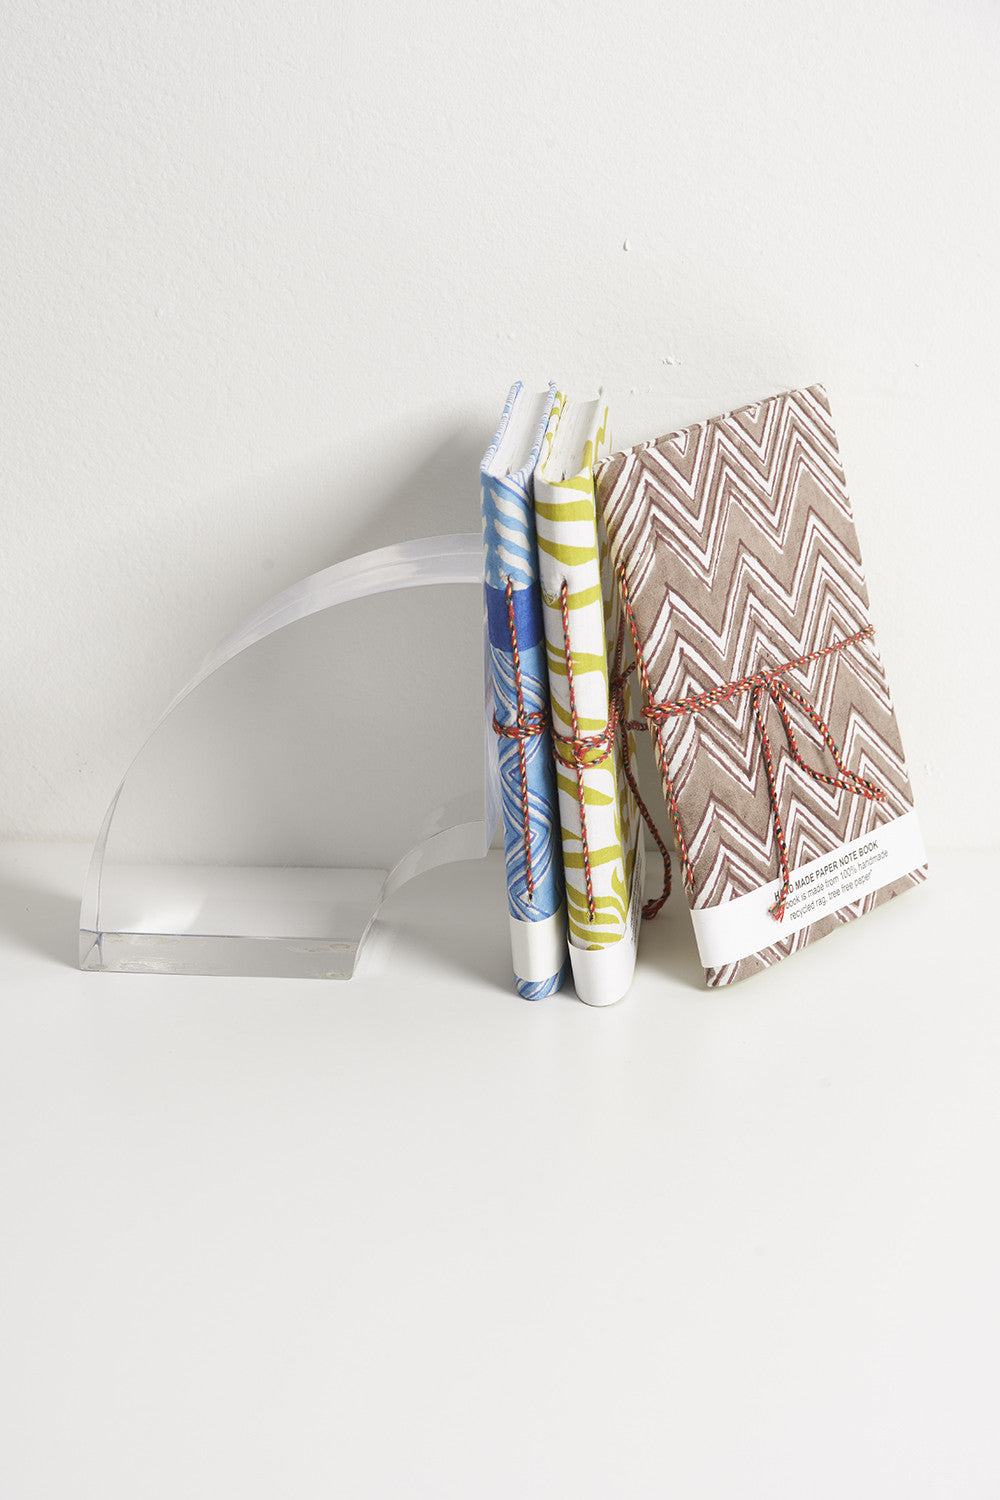 Handmade Books Made of 100% Recycled Materials